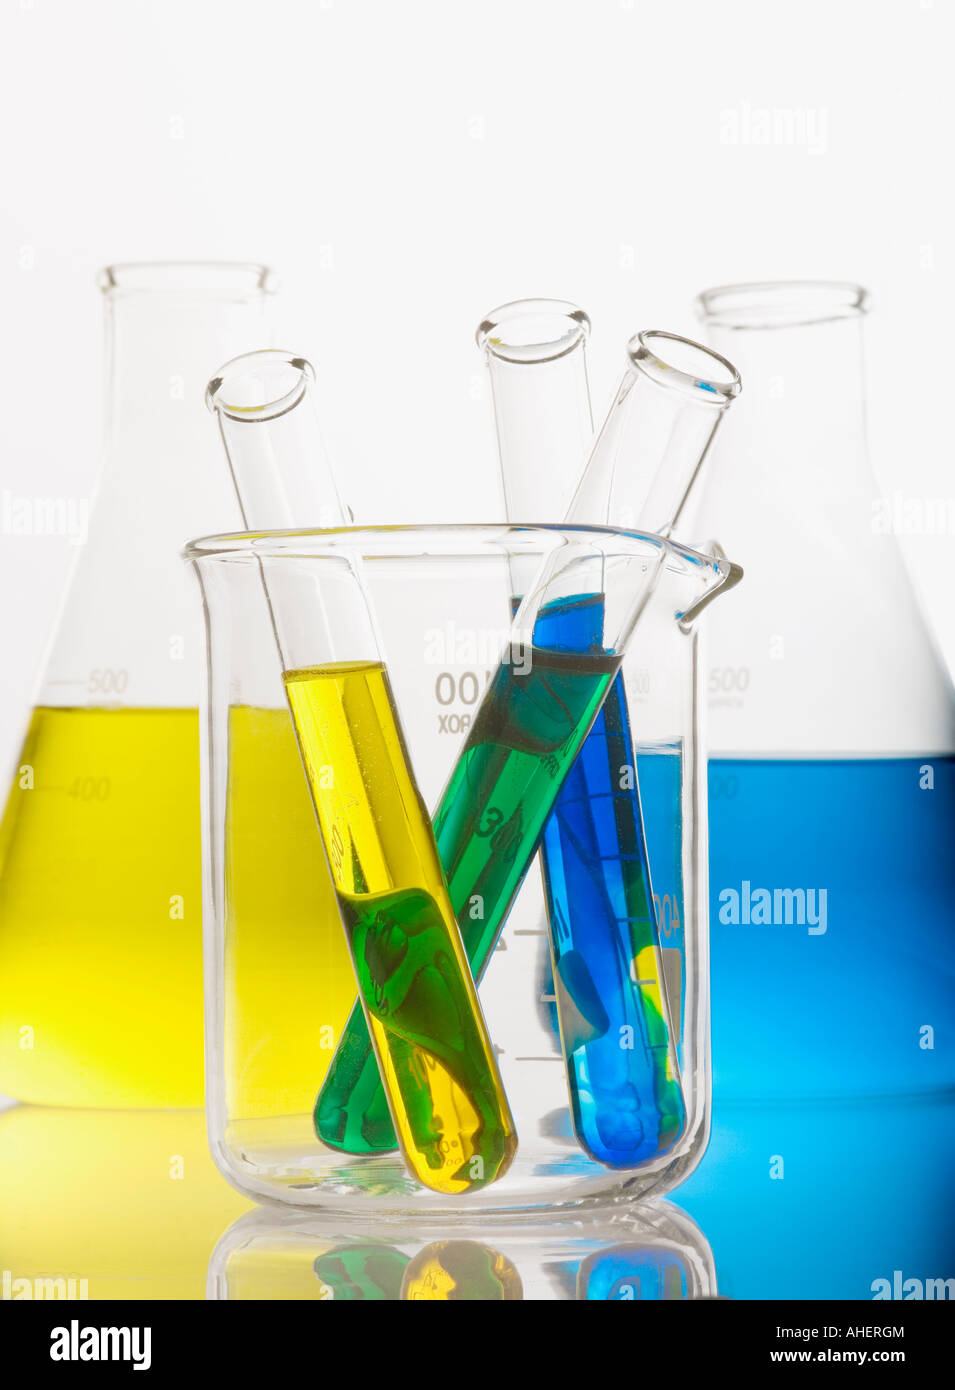 Test tubes and flasks with colorful solutions - Stock Image